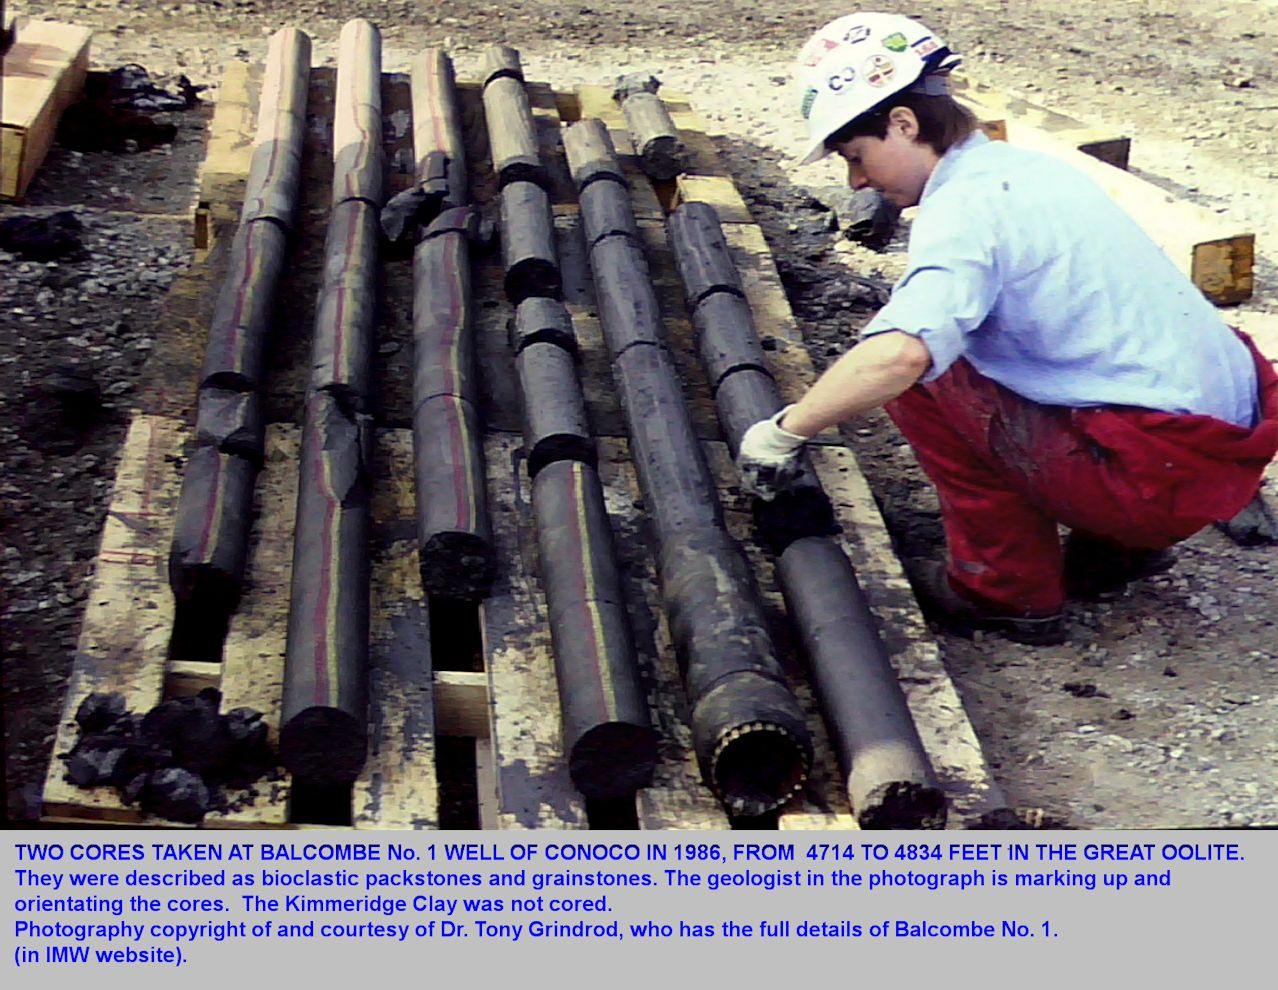 Coring of the Middle Jurassic by Conoco at Balcombe No.1 Borehole in 1986, photograph courtesy of Dr. Grindrod